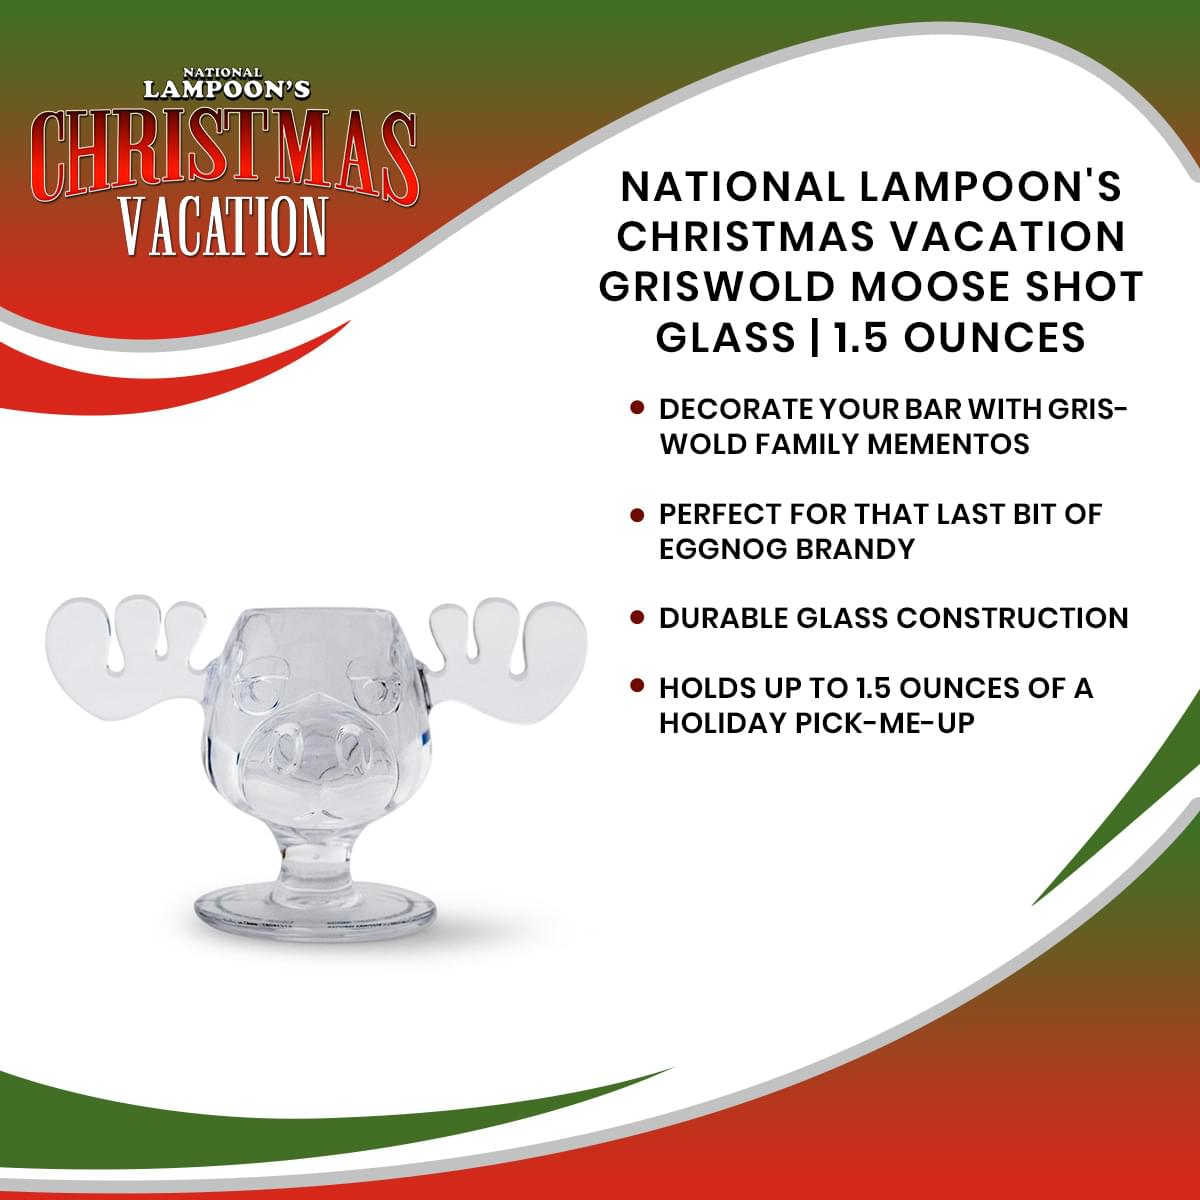 National Lampoon's Christmas Vacation Griswold Moose Shot Glass | 1.5 Ounces